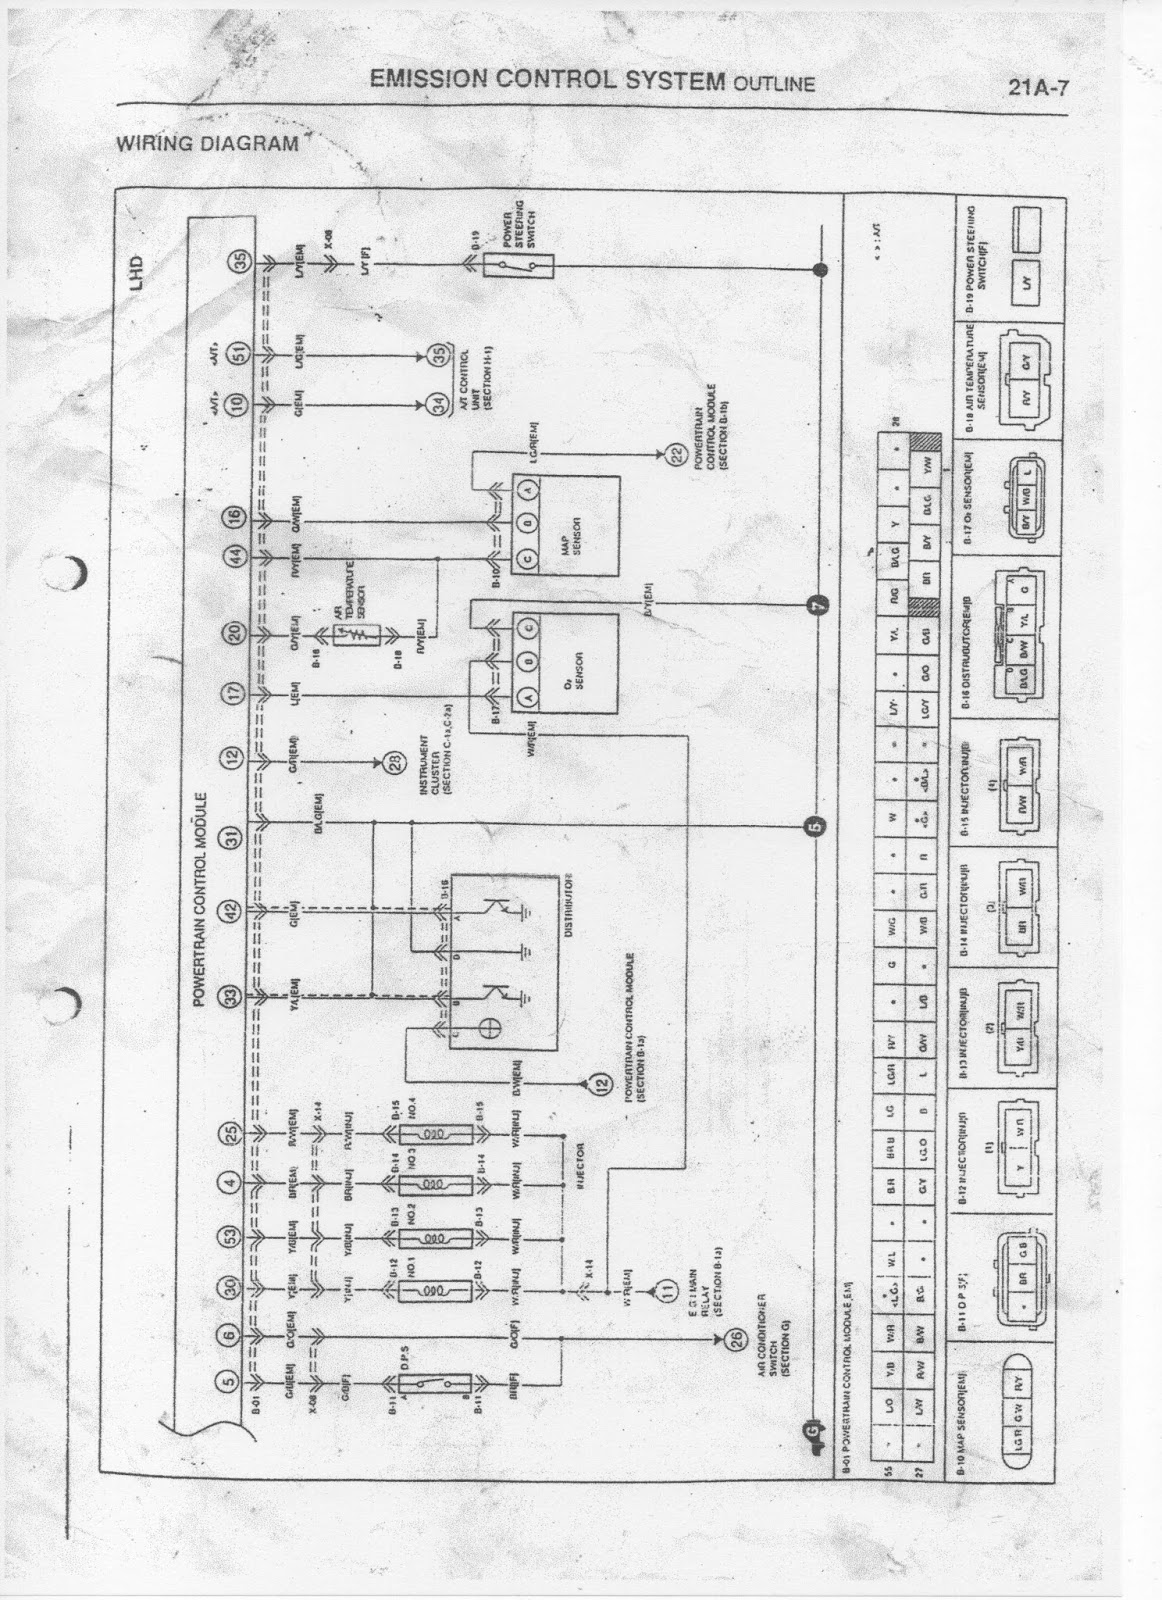 Terrific daihatsu mira l5 wiring diagram contemporary best image unusual proton wira wiring diagram gallery the best electrical cheapraybanclubmaster Image collections